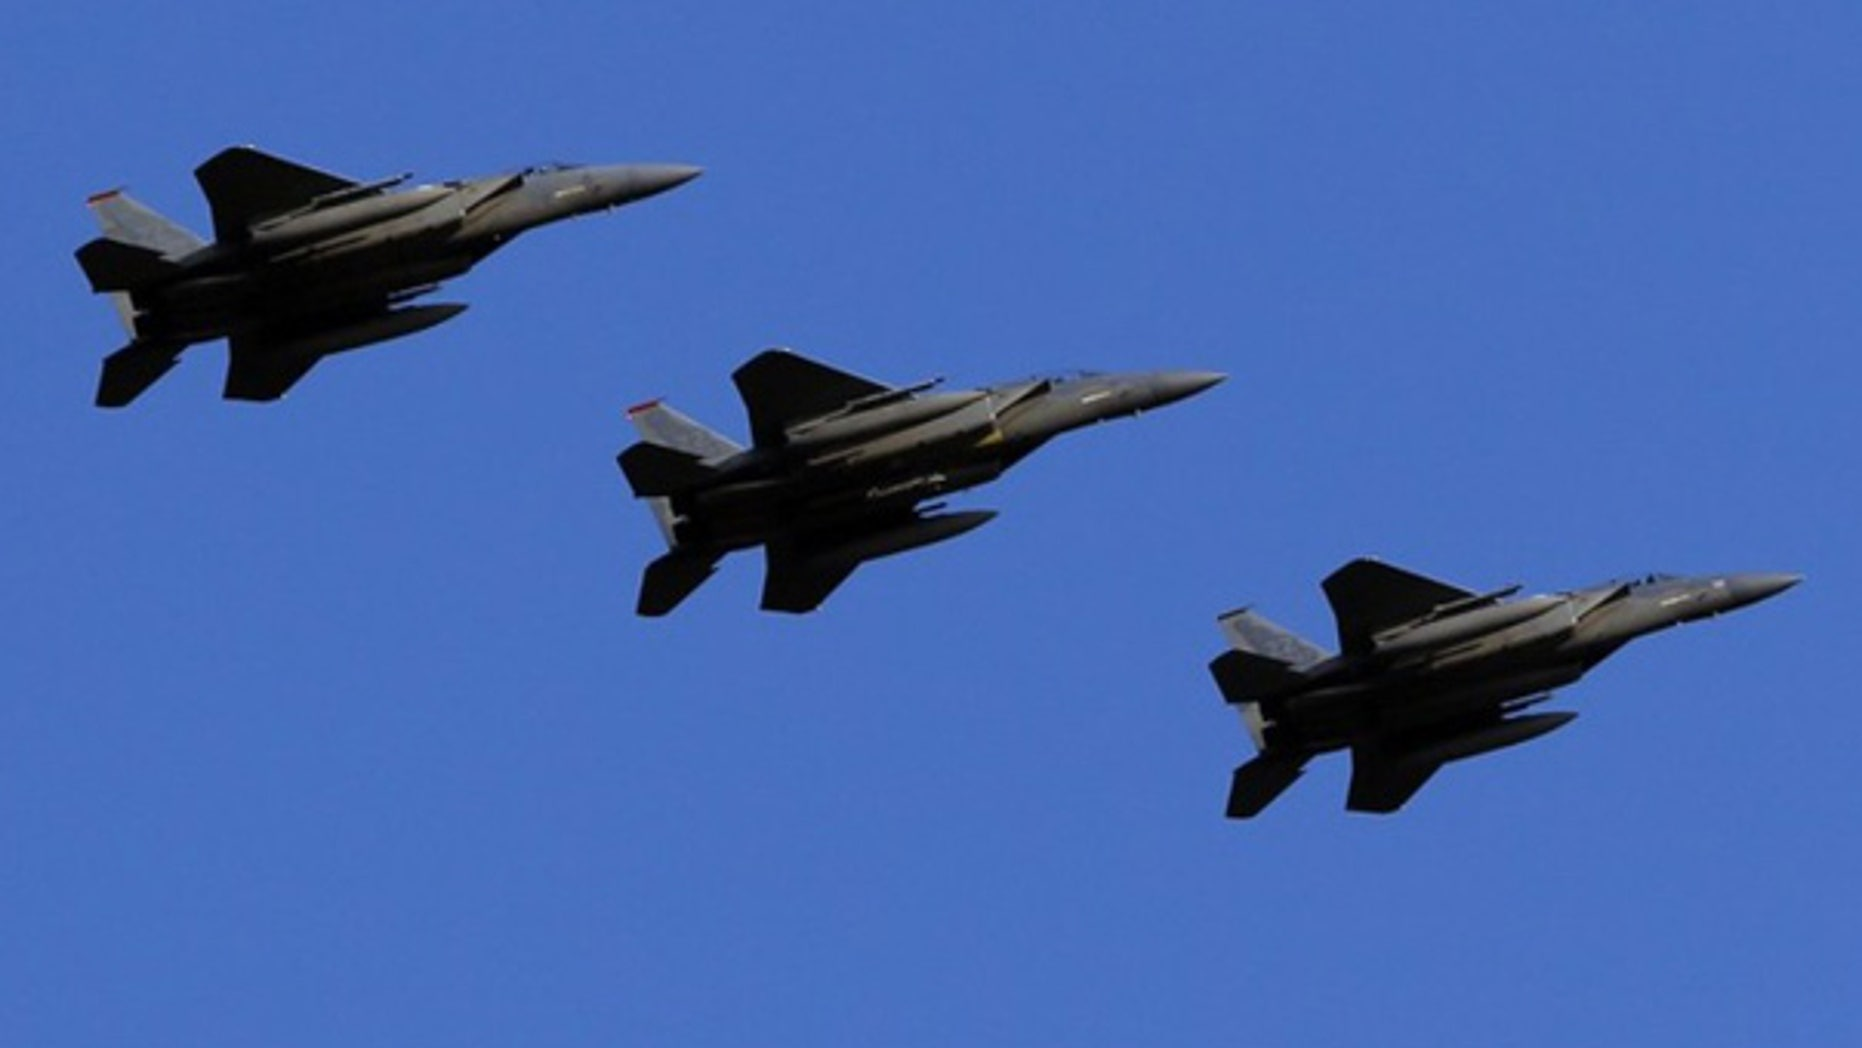 Feb. 25: U.S. Air Force F-15 Eagle fighter jets fly over Kadena Air Base in Japan.